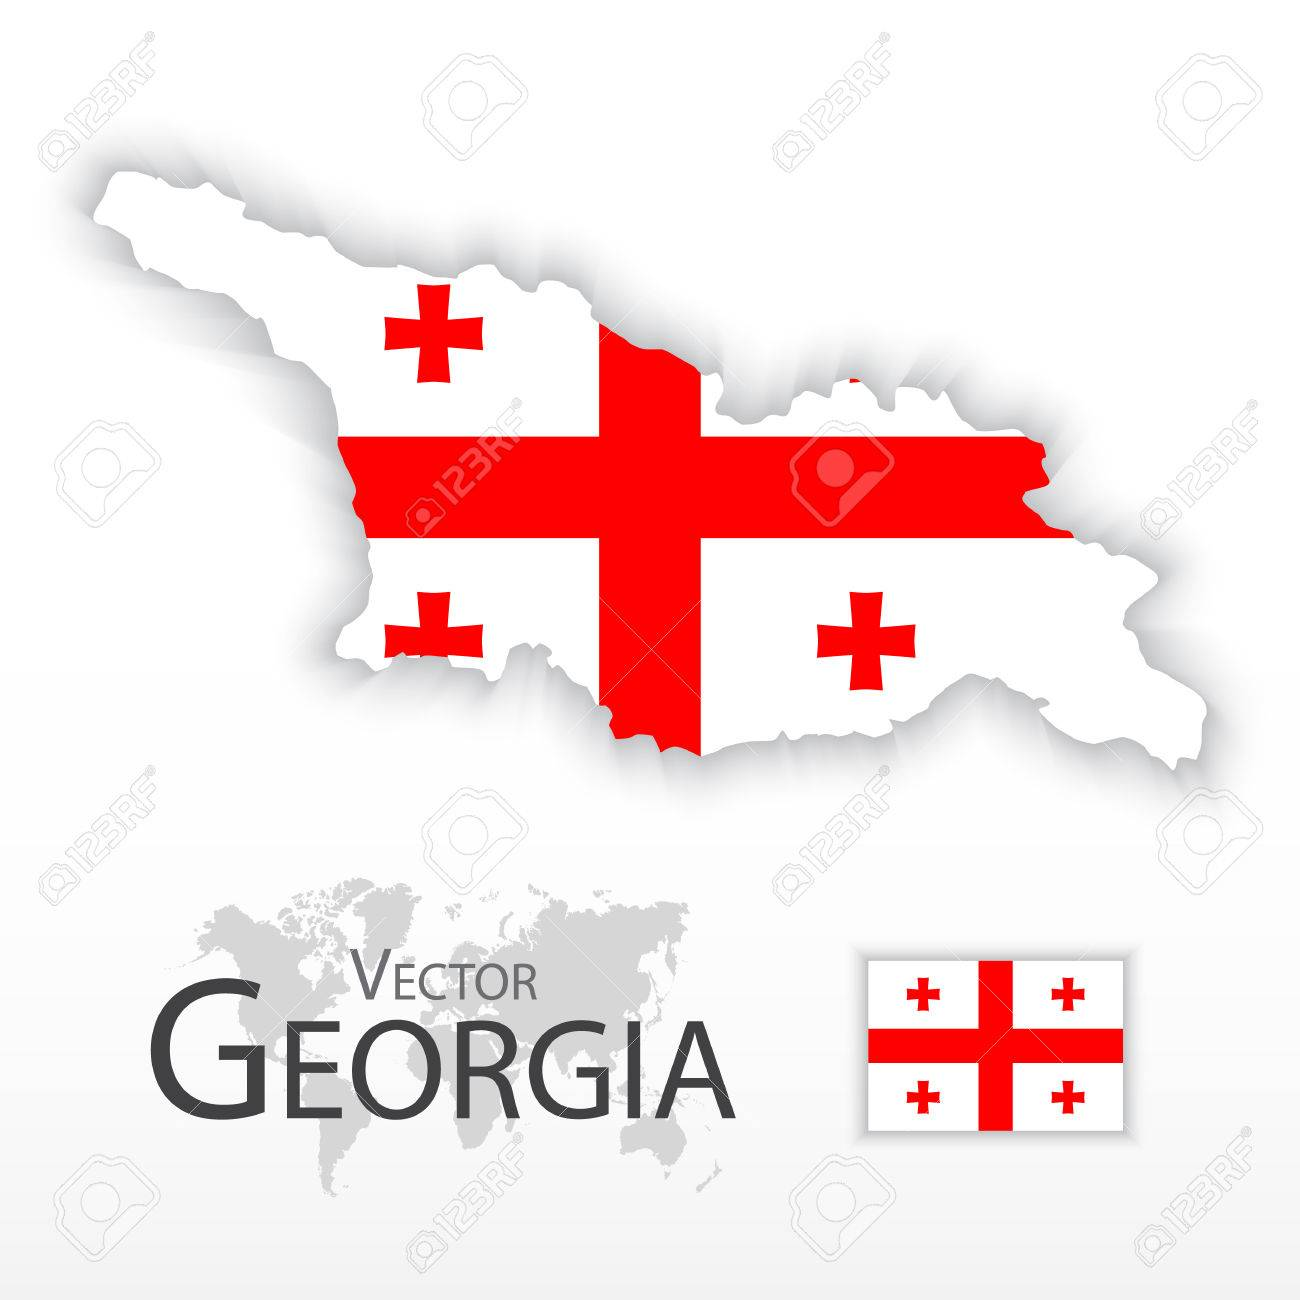 Map Republic Of Georgia.Georgia Republic Of Georgia Flag And Map Transportation